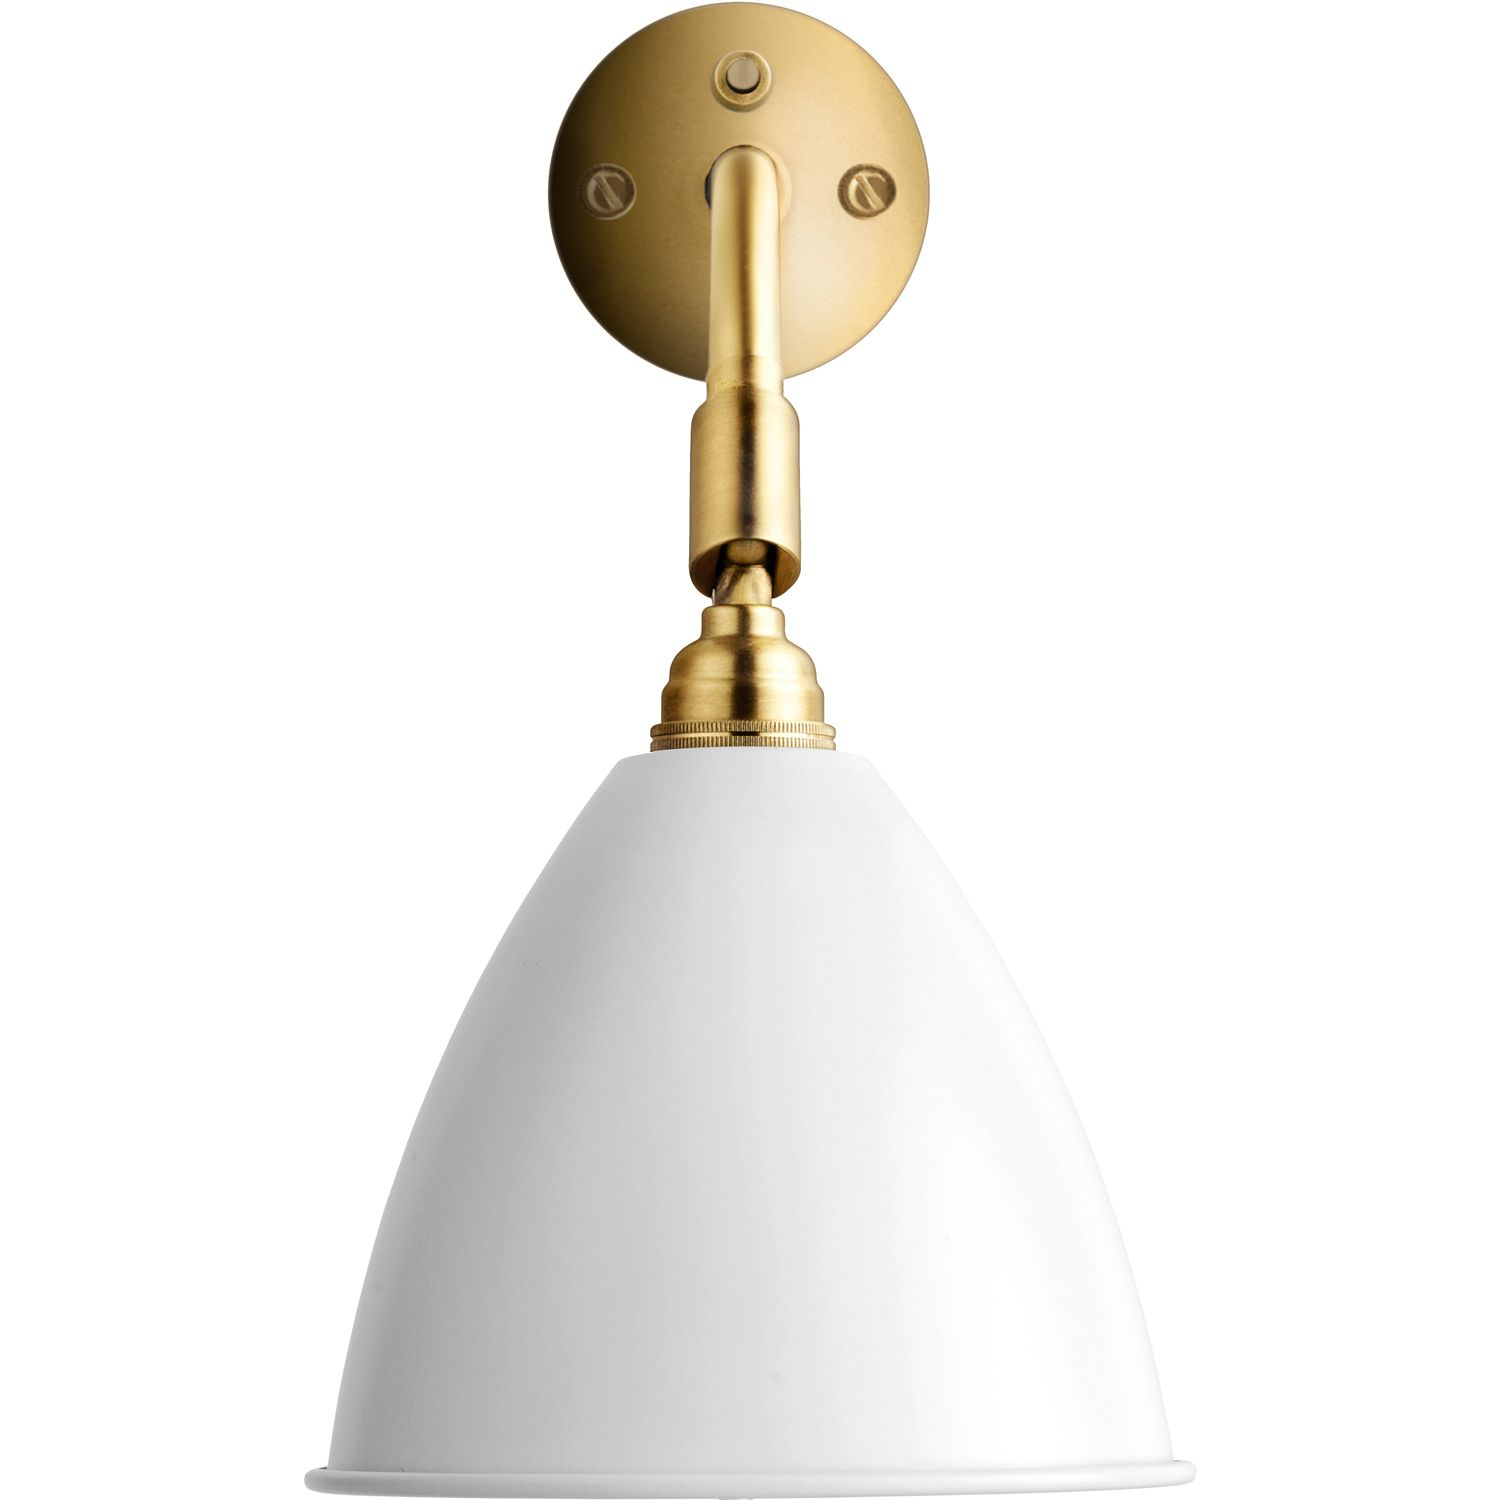 High Quality Bestlite Wall Sconce Gubi Ylighting Within Measurements 1000 X 1000 Wall  Sconce Brass   You Likely Have Seen Electric Wall Structure Sconces Used A